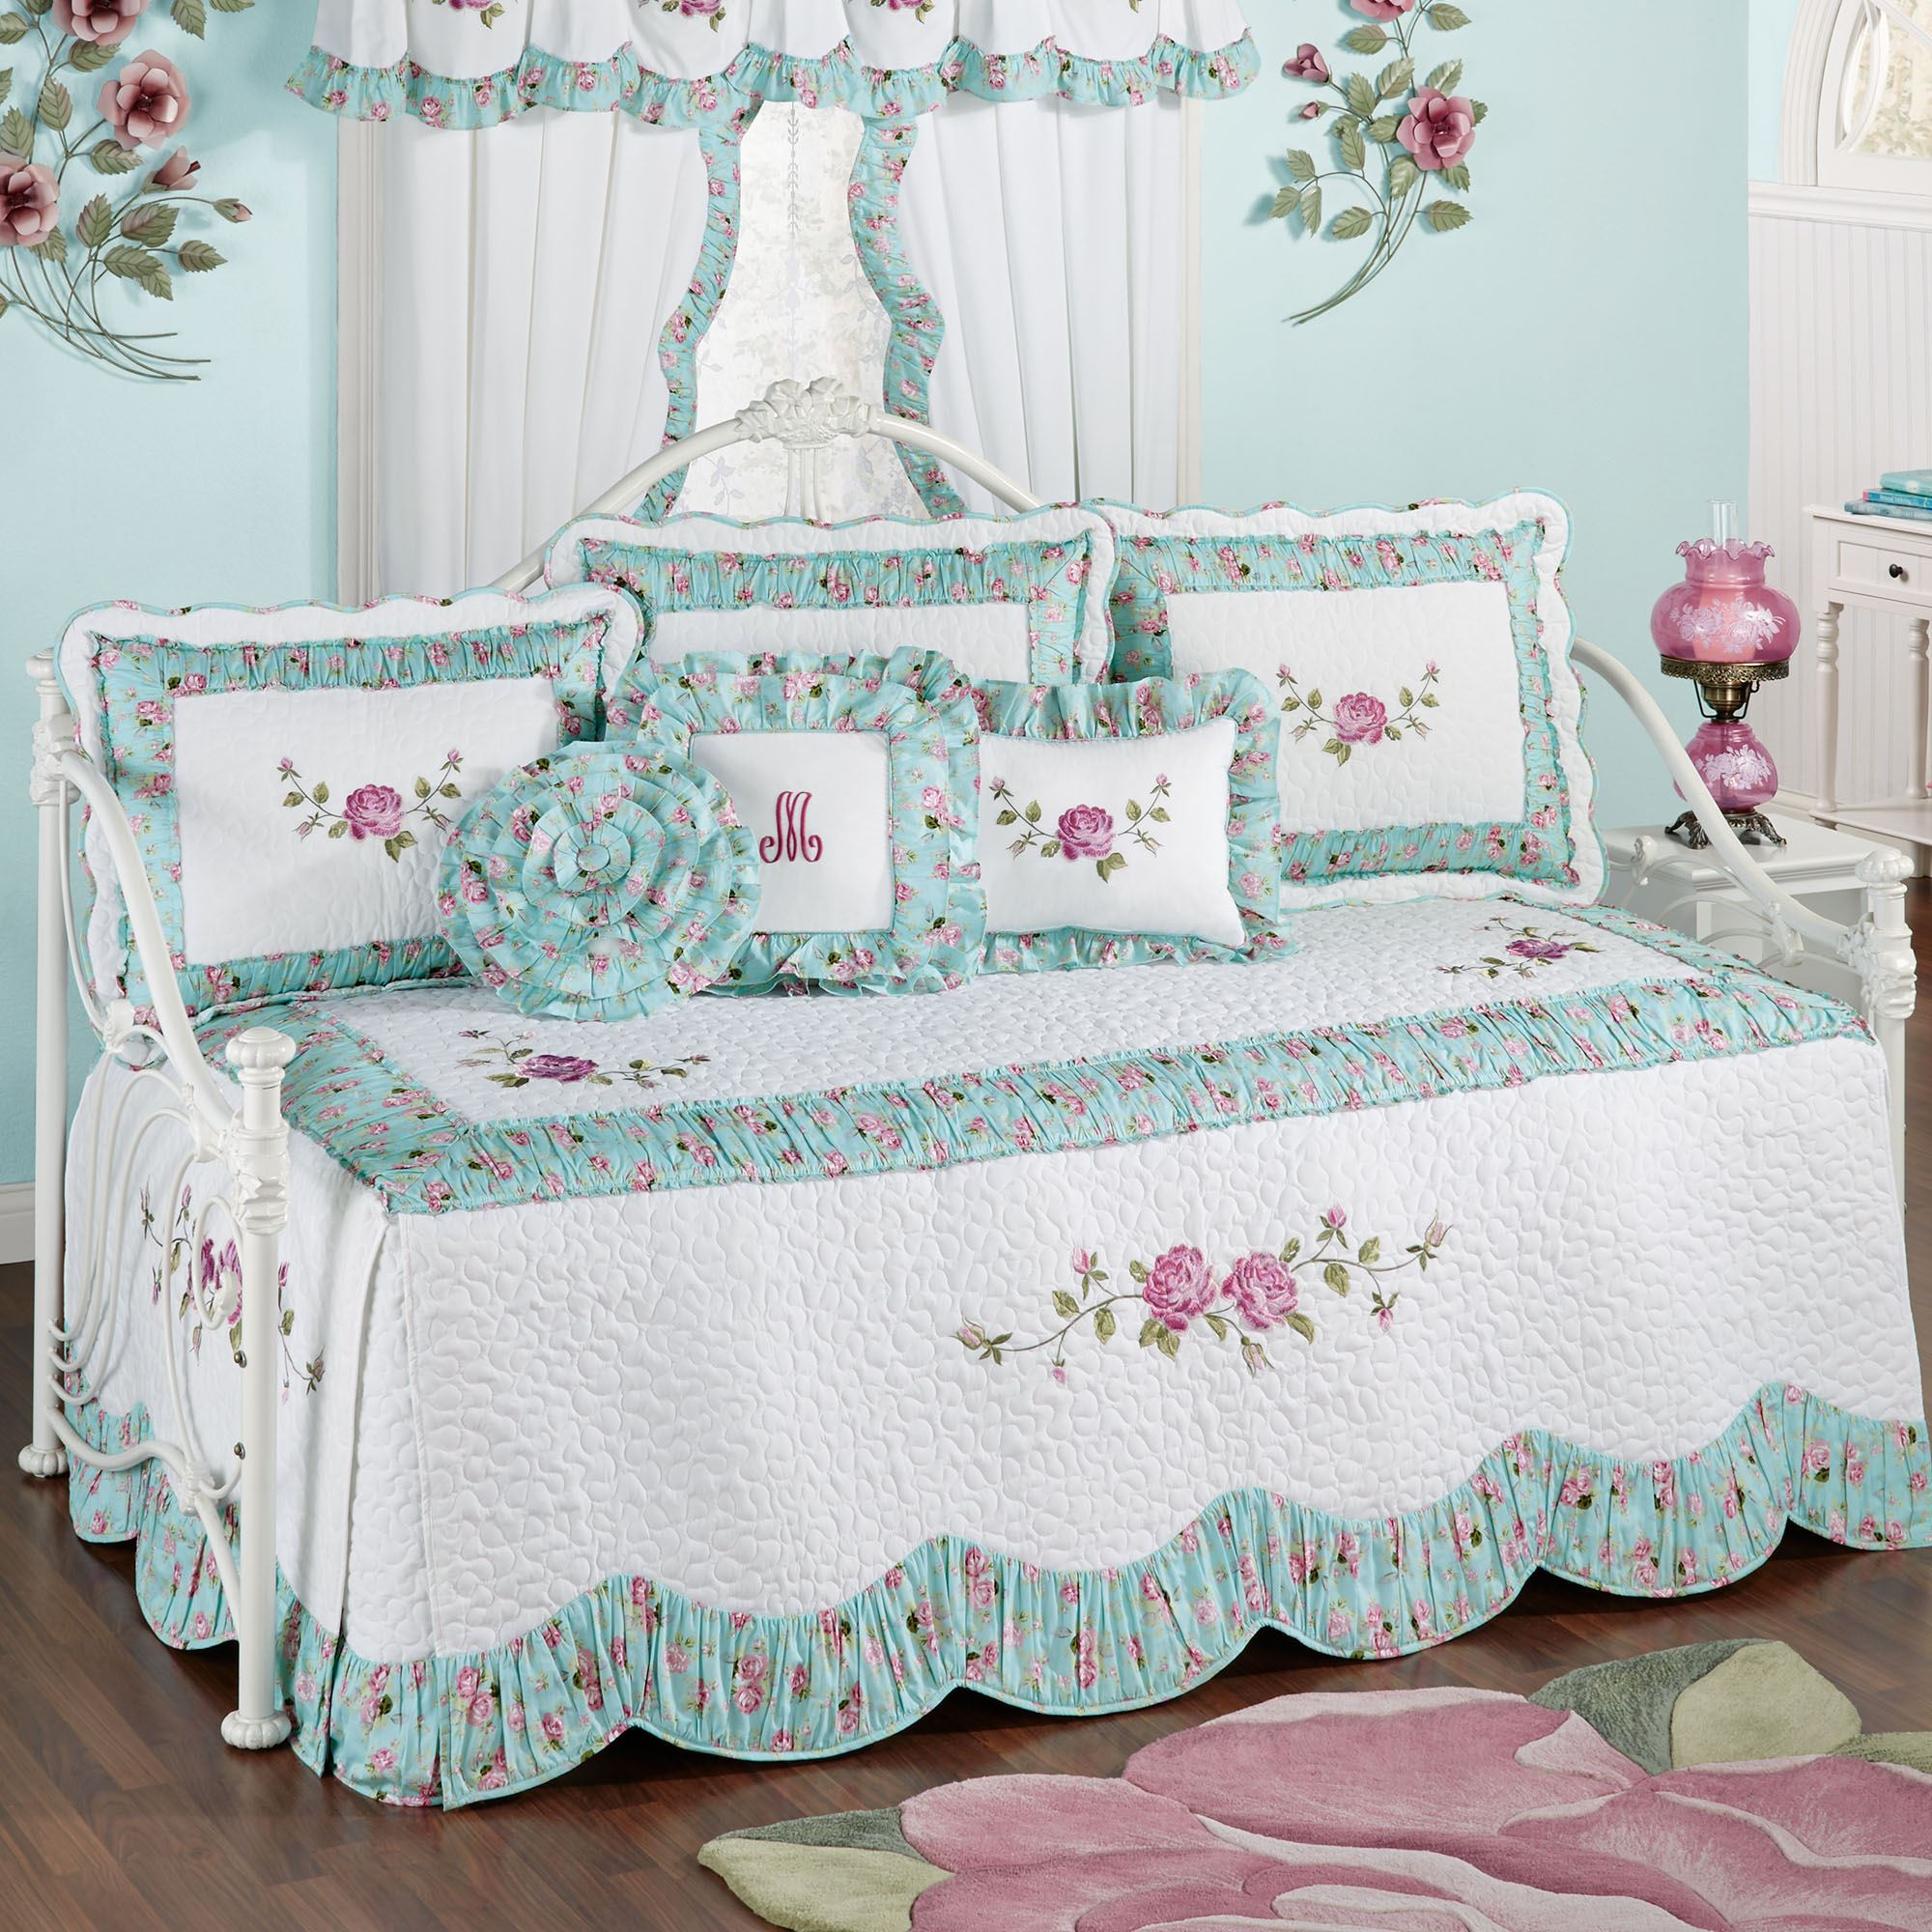 Rose Garden Floral Quilted Daybed Bedding Set